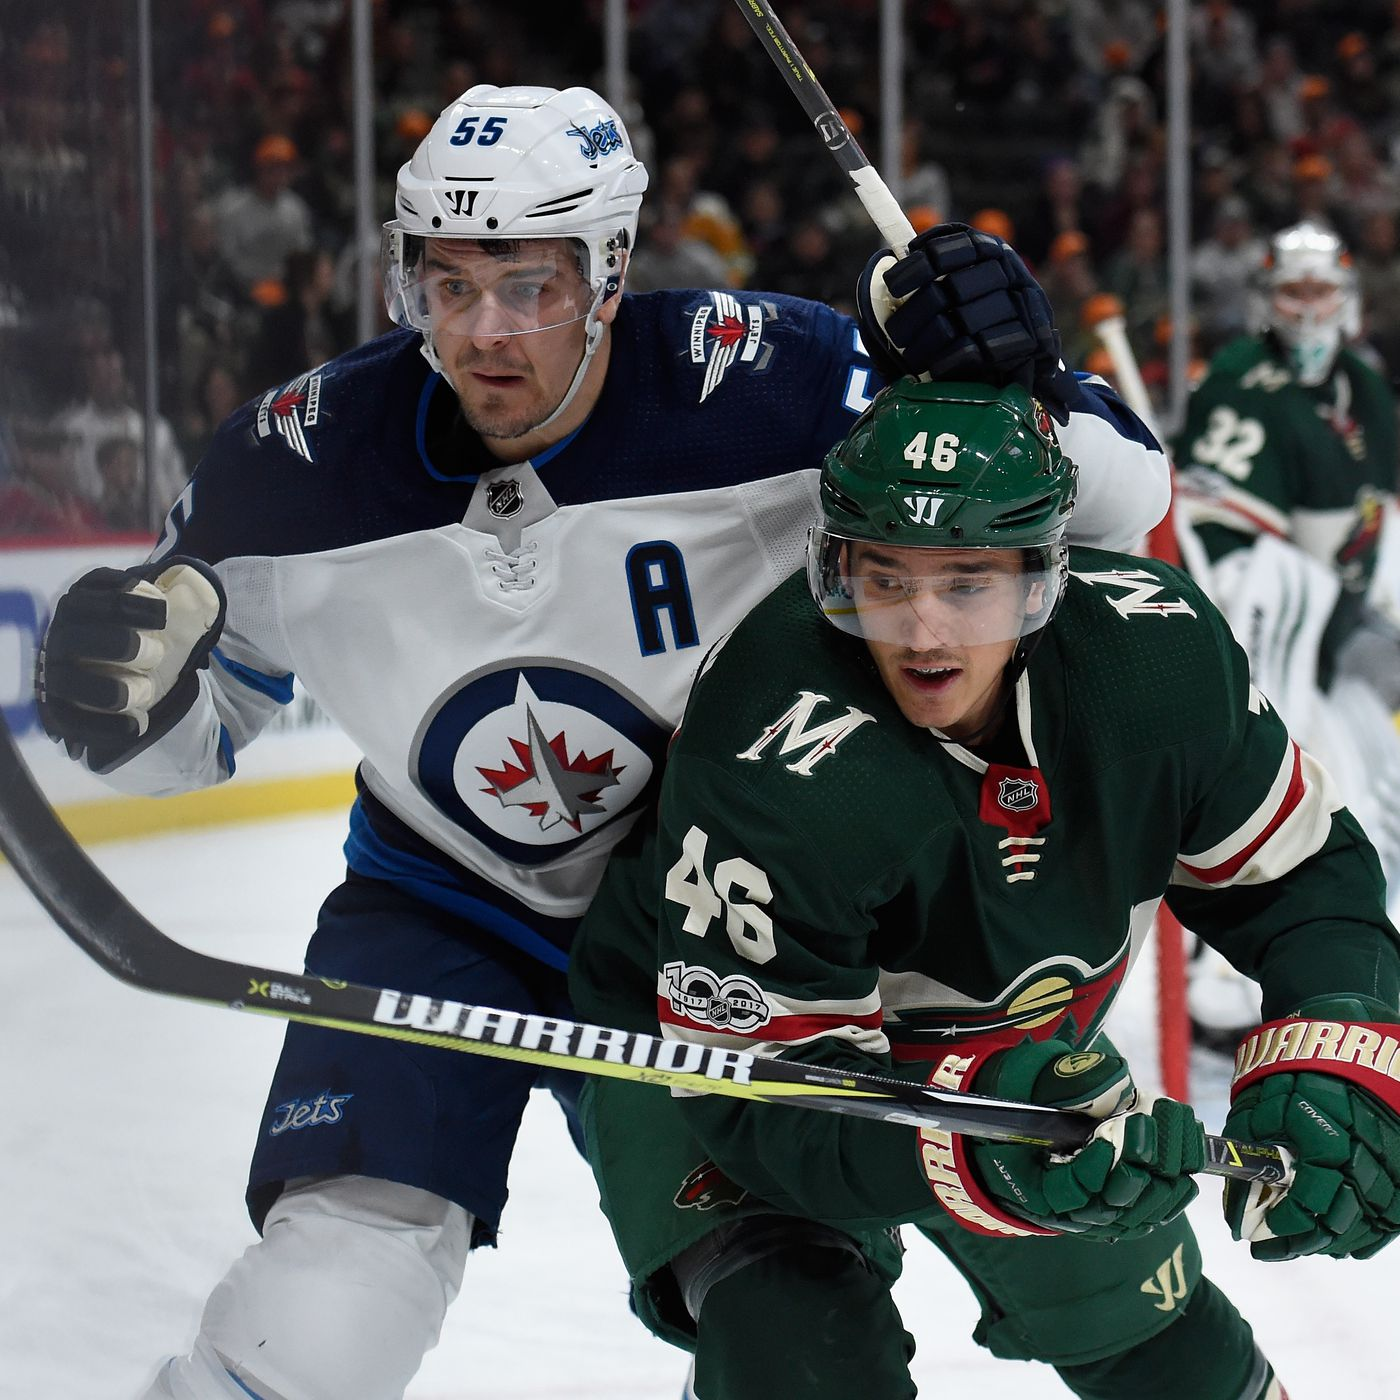 Game 1 Is Here Patrik Laine And The Jets Are No Small Task For The Minnesota Wild Jared Spurgeon Is Still A Game Time Decision Hockey Wilderness